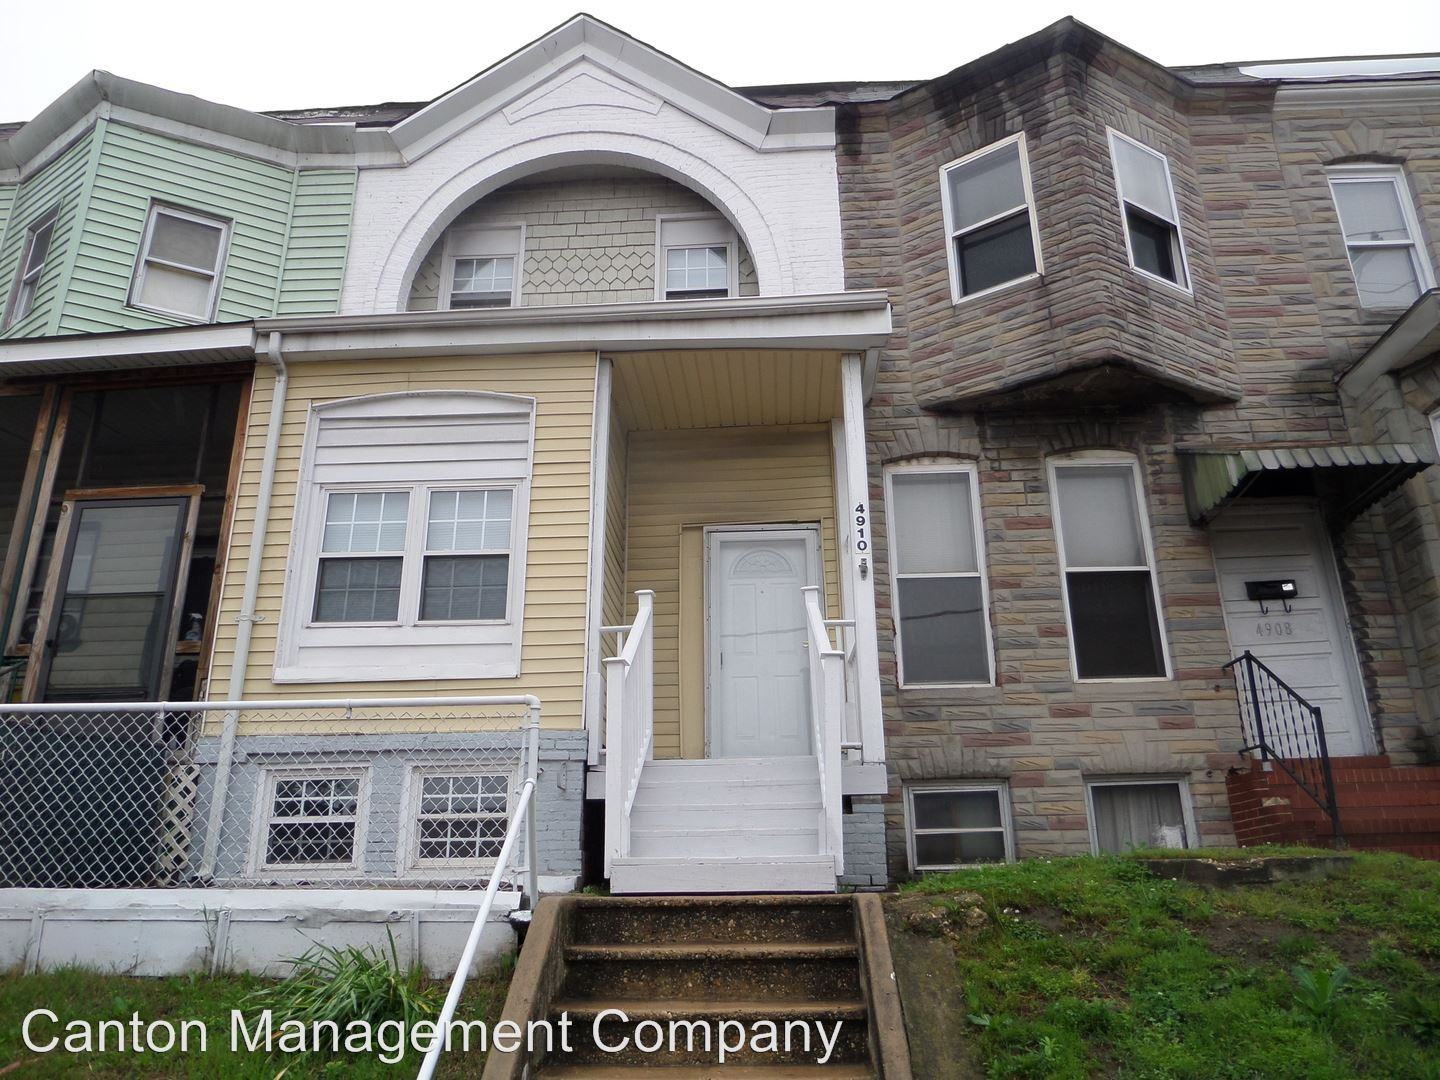 4910 Pennington Ave Baltimore MD 21226 2 Bedroom House For Rent For 950 Mo